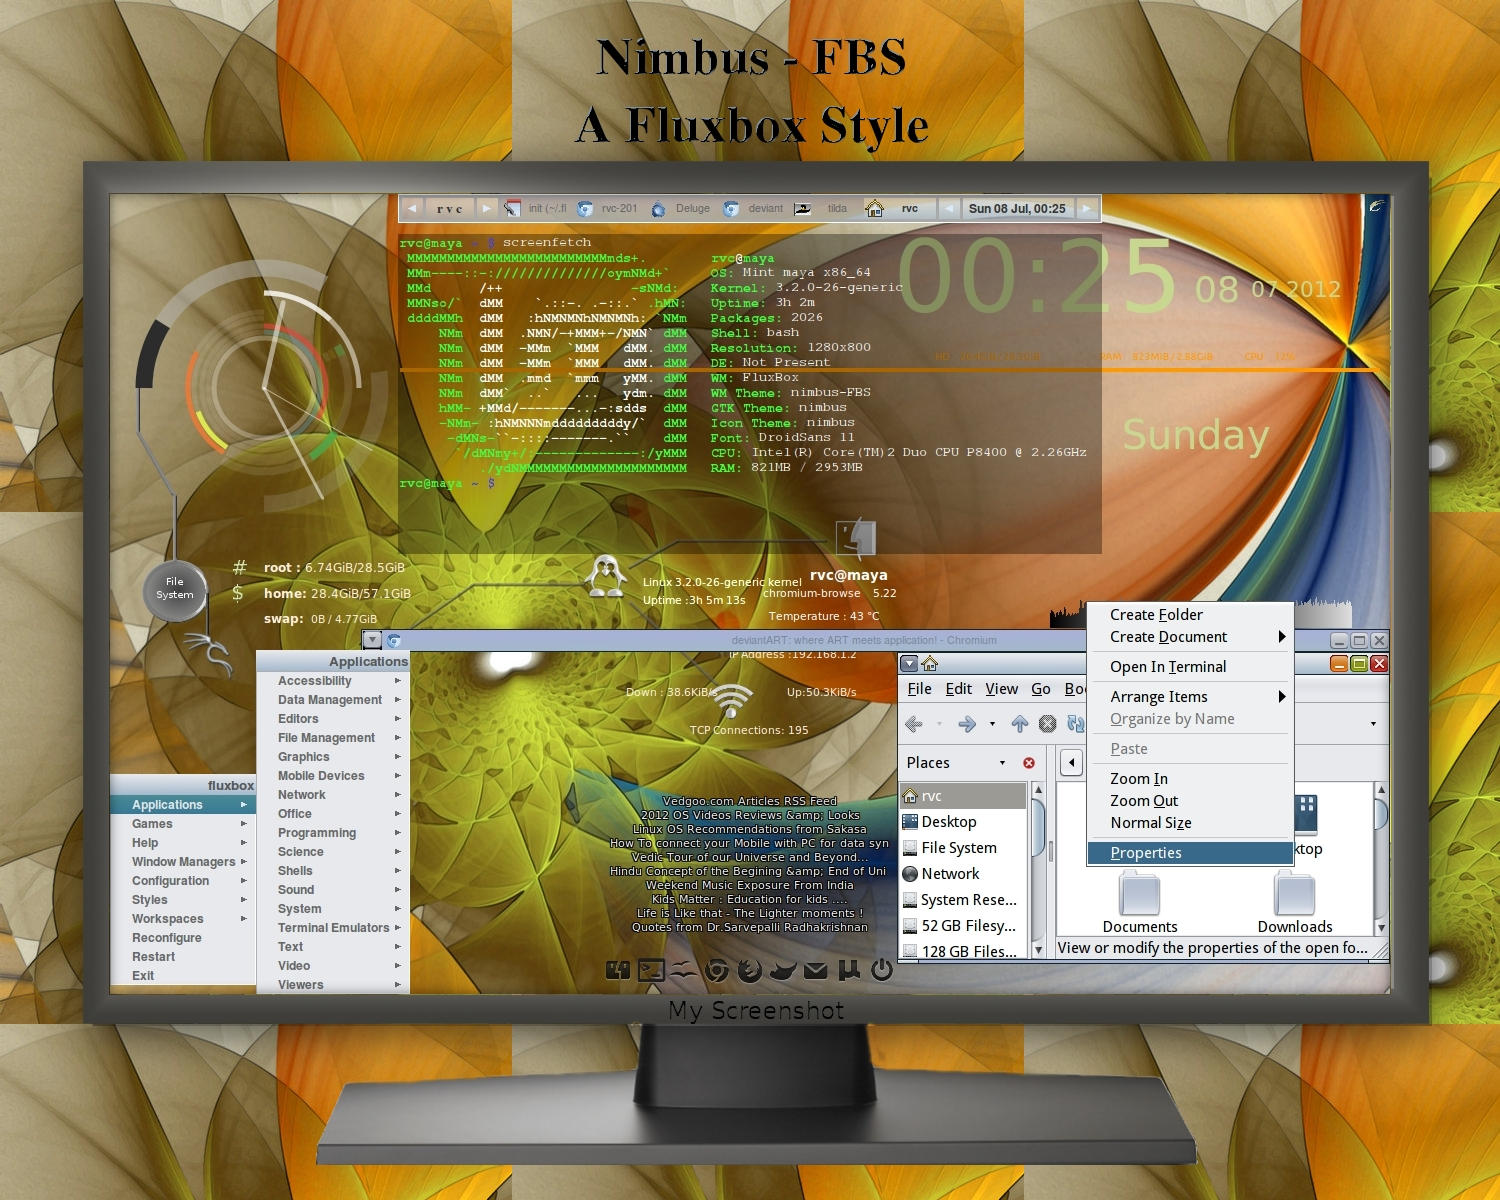 Nimbus - FBS A fluxbox style by rvc-2011